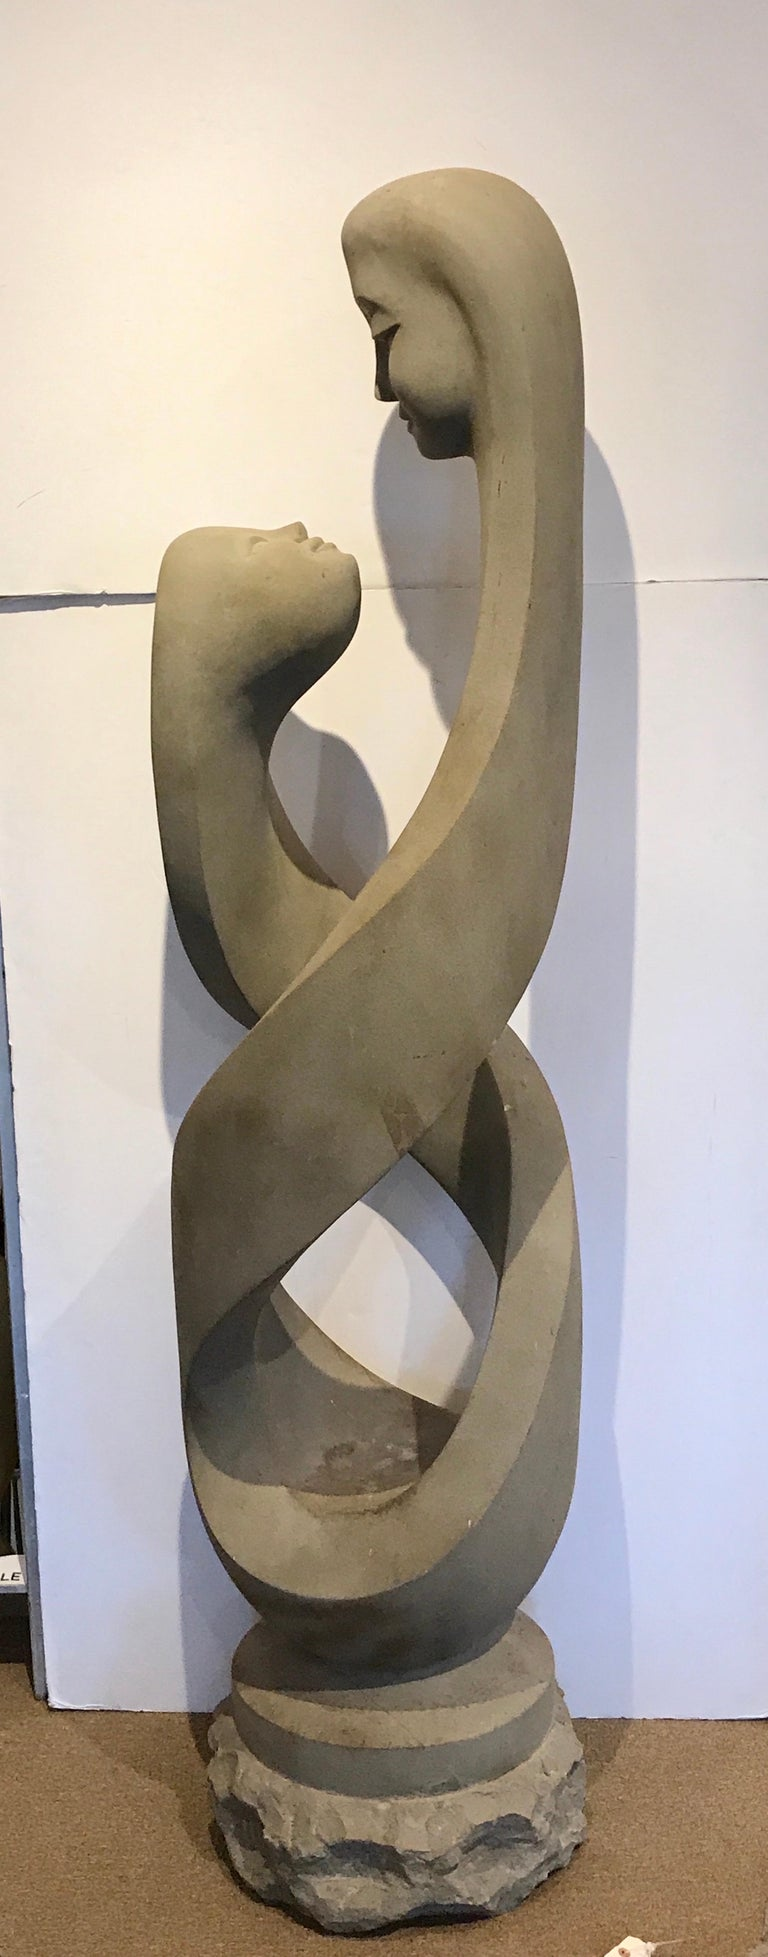 Monumental modern carved limestone spiral sculpture, with two figural heads facing each other. Standing 76